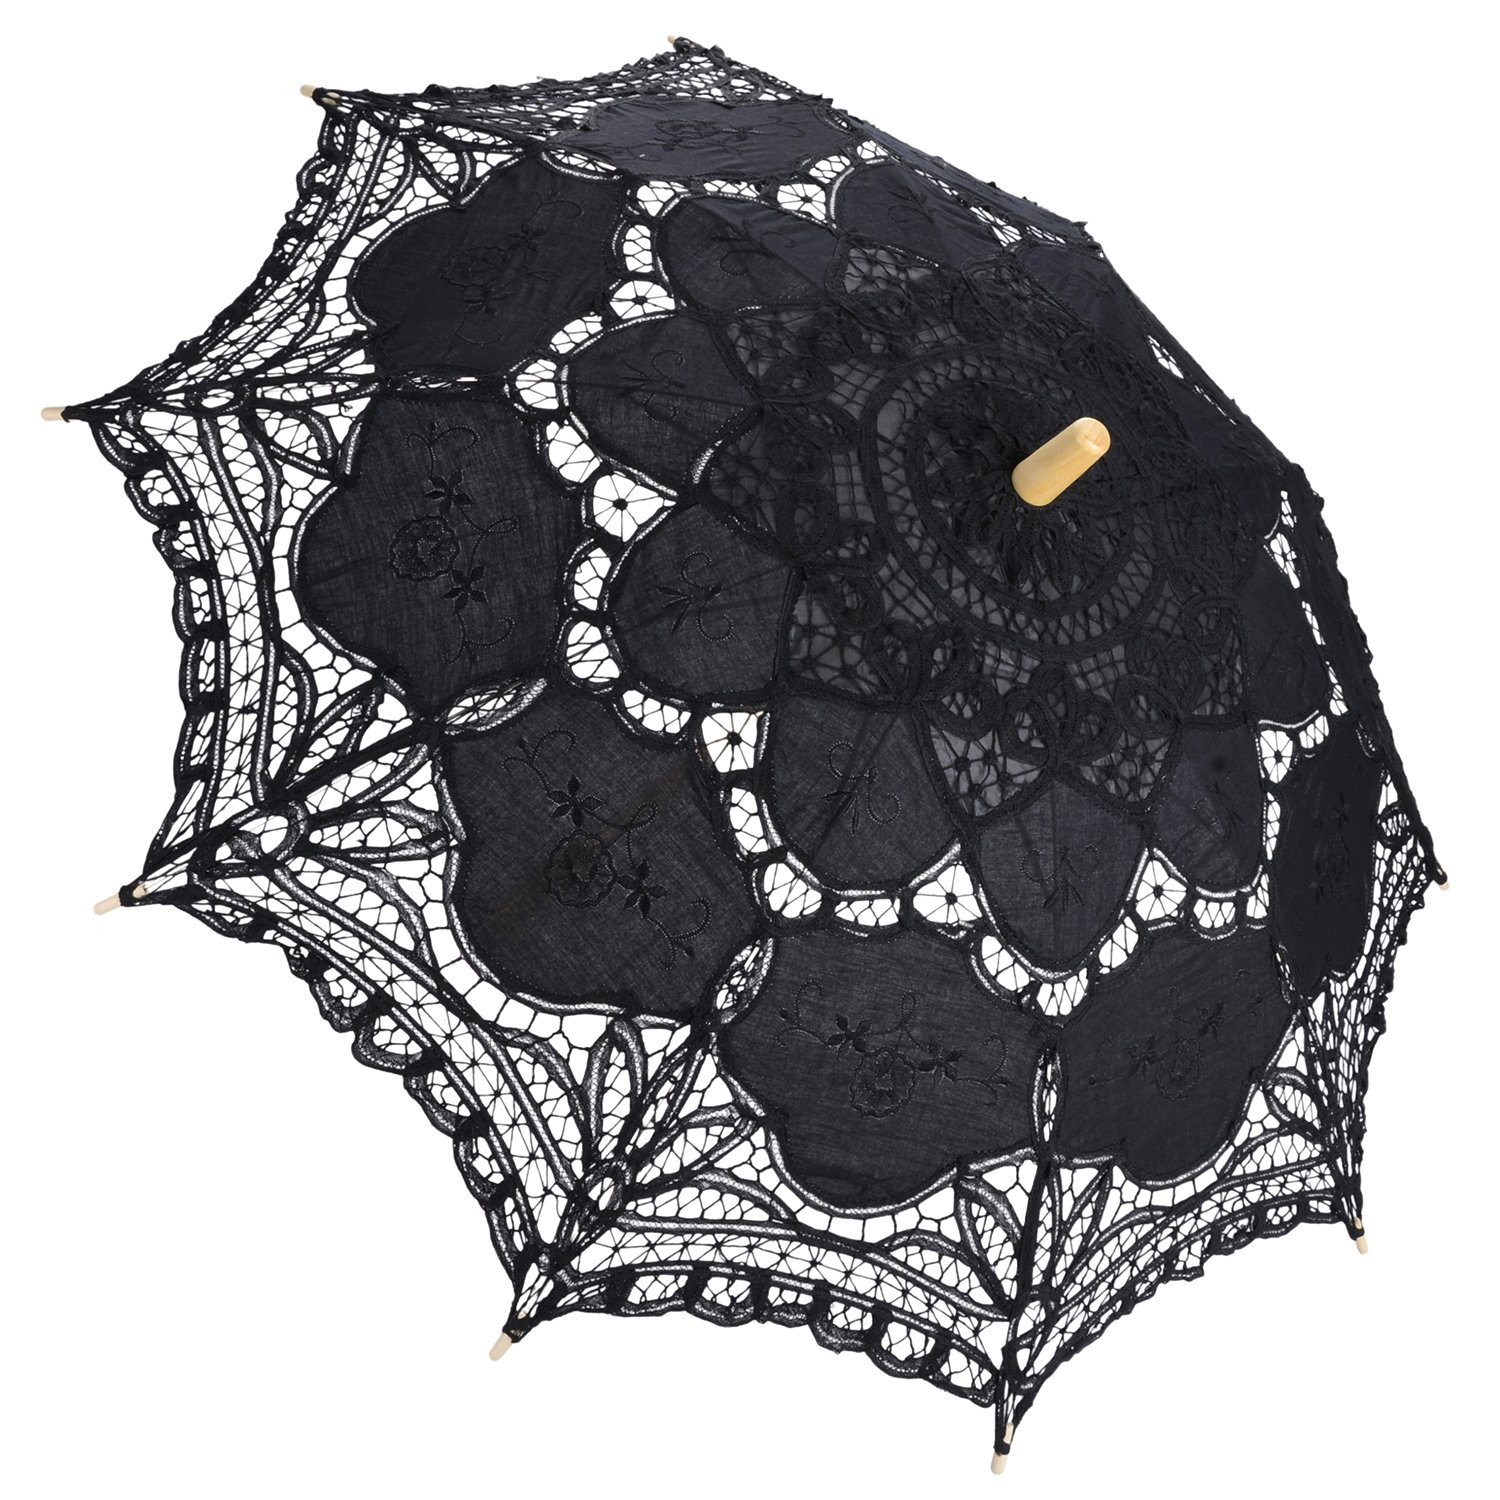 Outgeek Lace Umbrella, Auto Open Retro Embroidered Parasol Wedding Accessories for Bridal (Black)